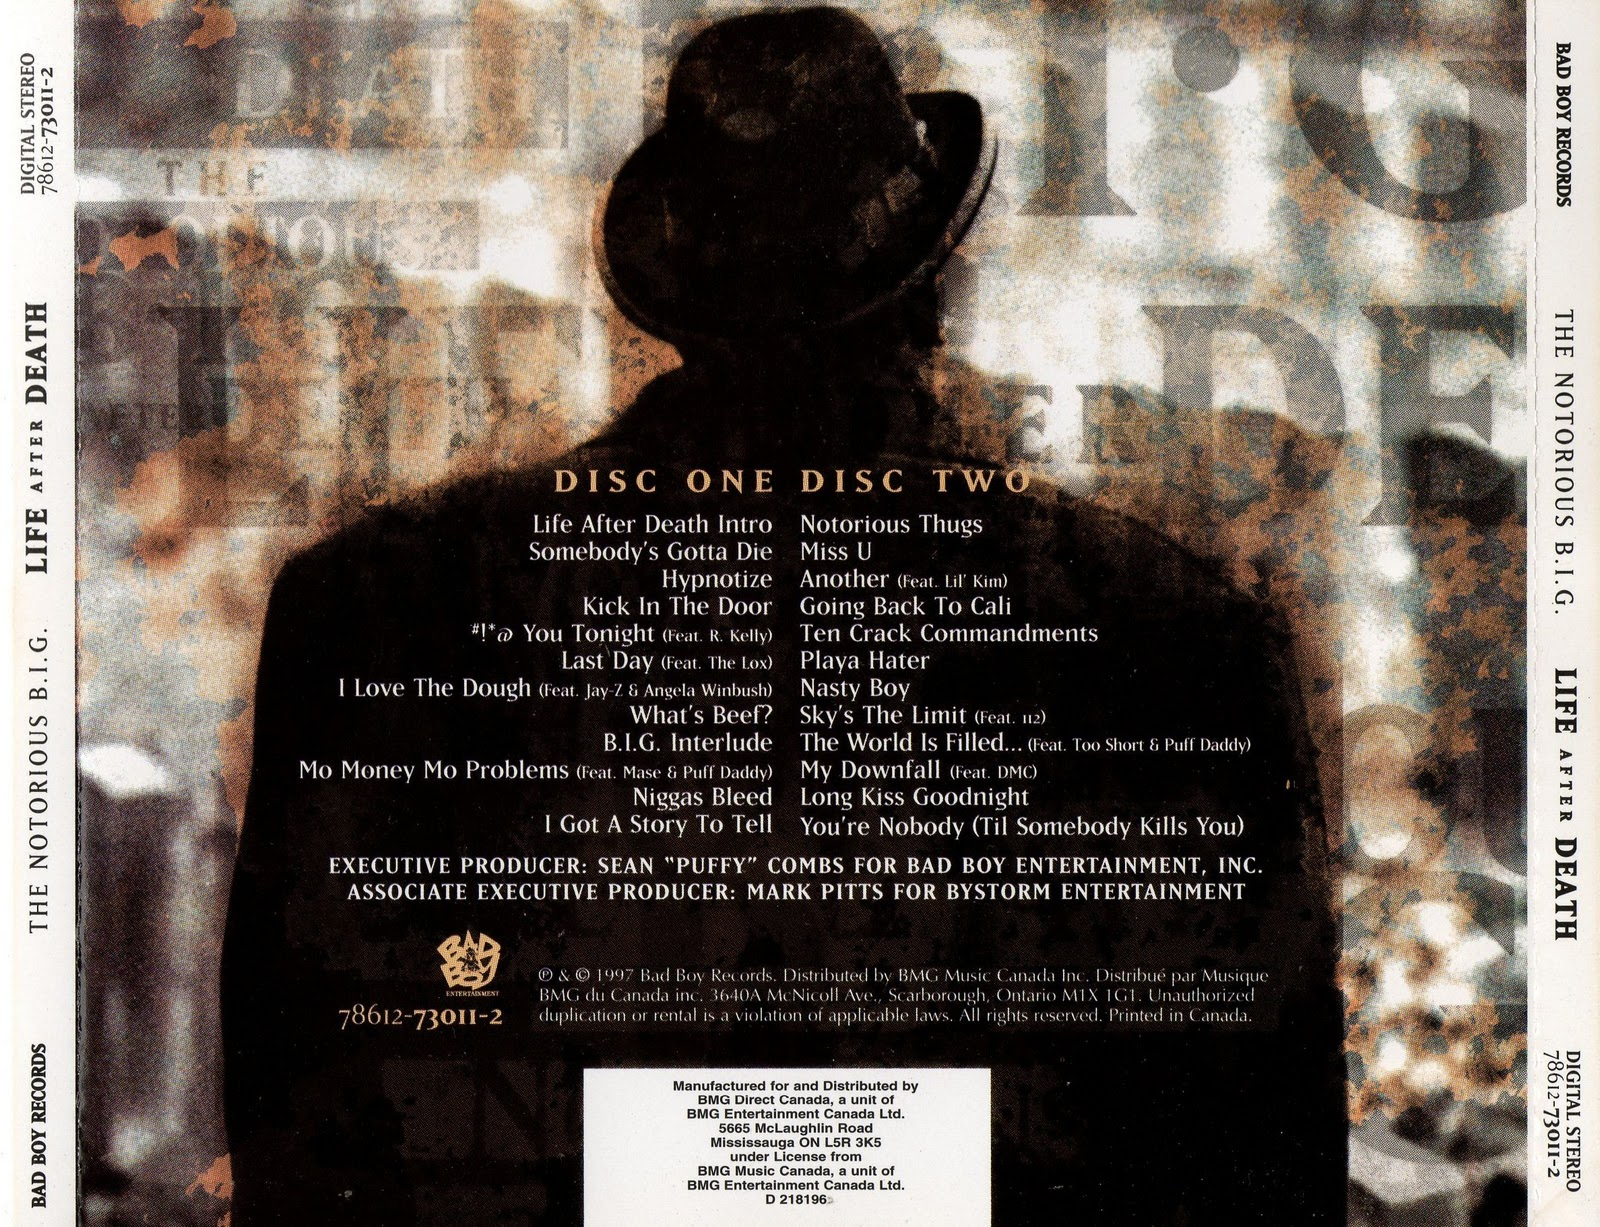 ARIAN SIDE: The Notorious B.I.G - life after death (1997)